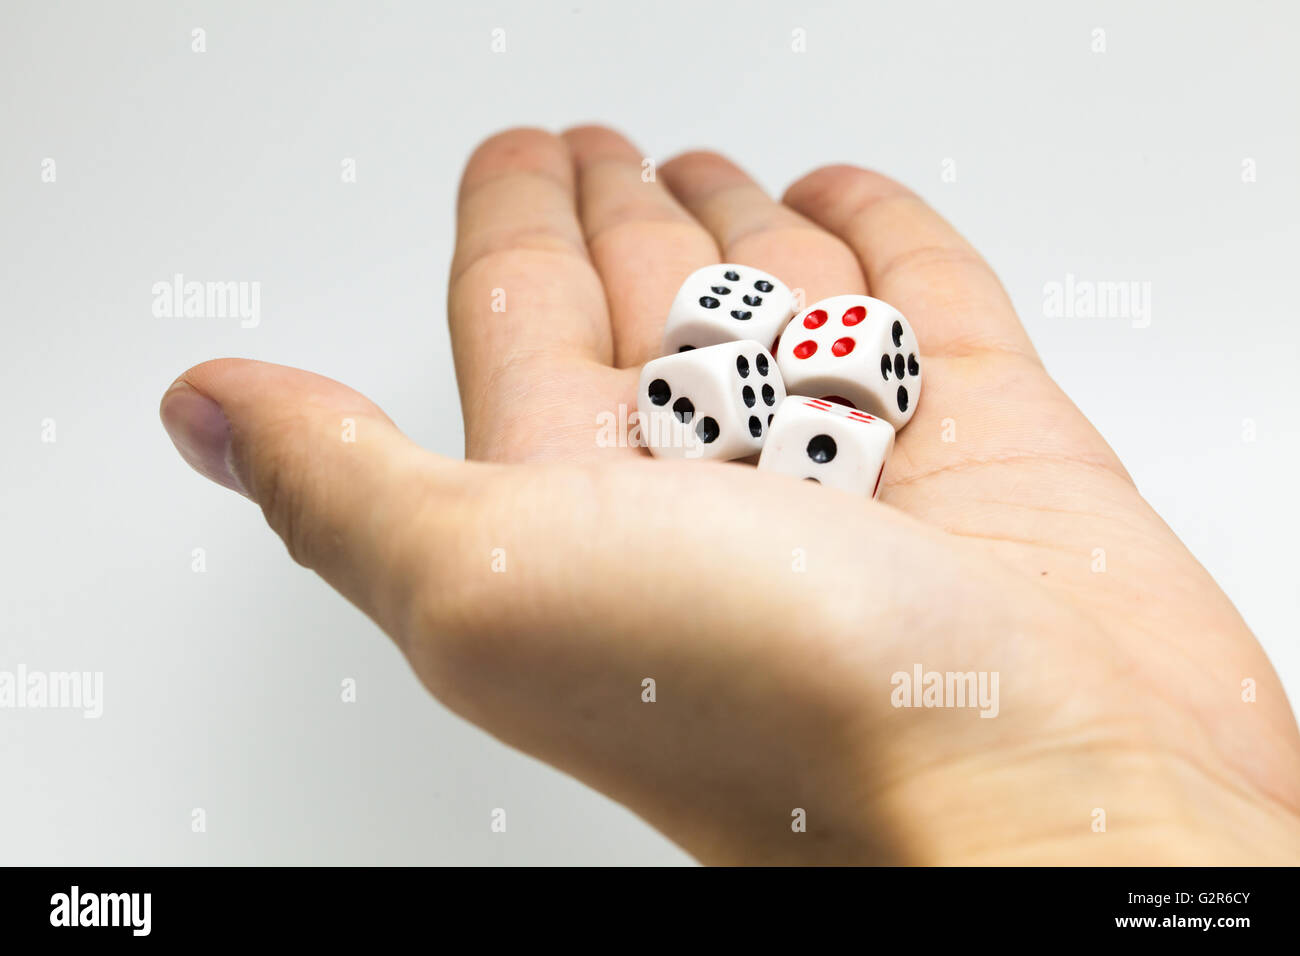 Human hand ready to roll the dice on white isolated background - Try luck, Take Risk or Business concept (Focus Stock Photo